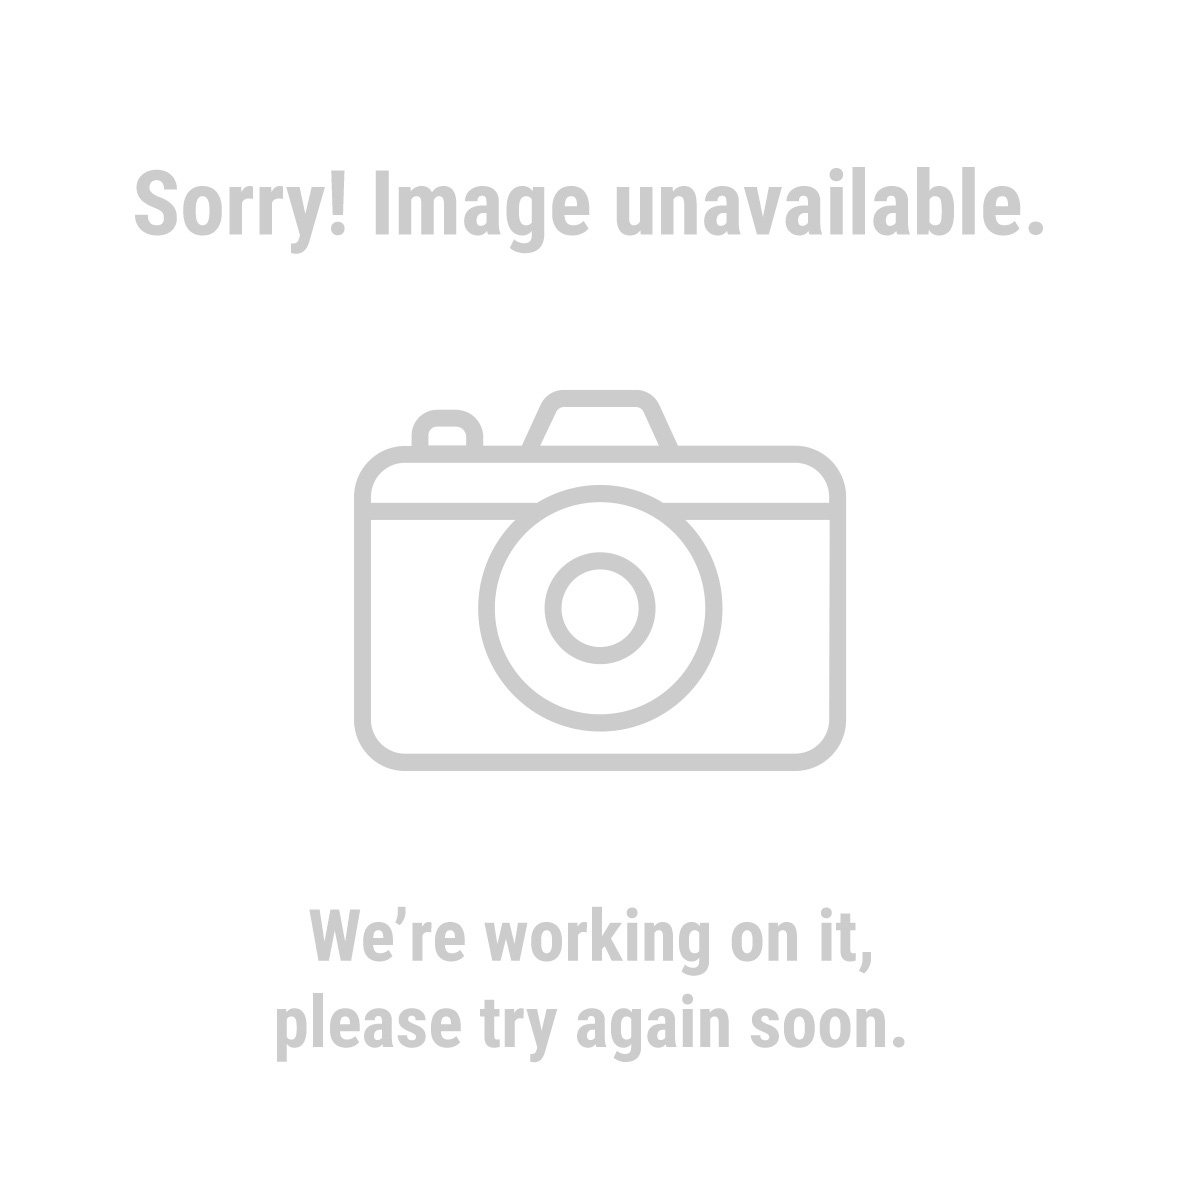 40439 3 Piece Detail Brush Set